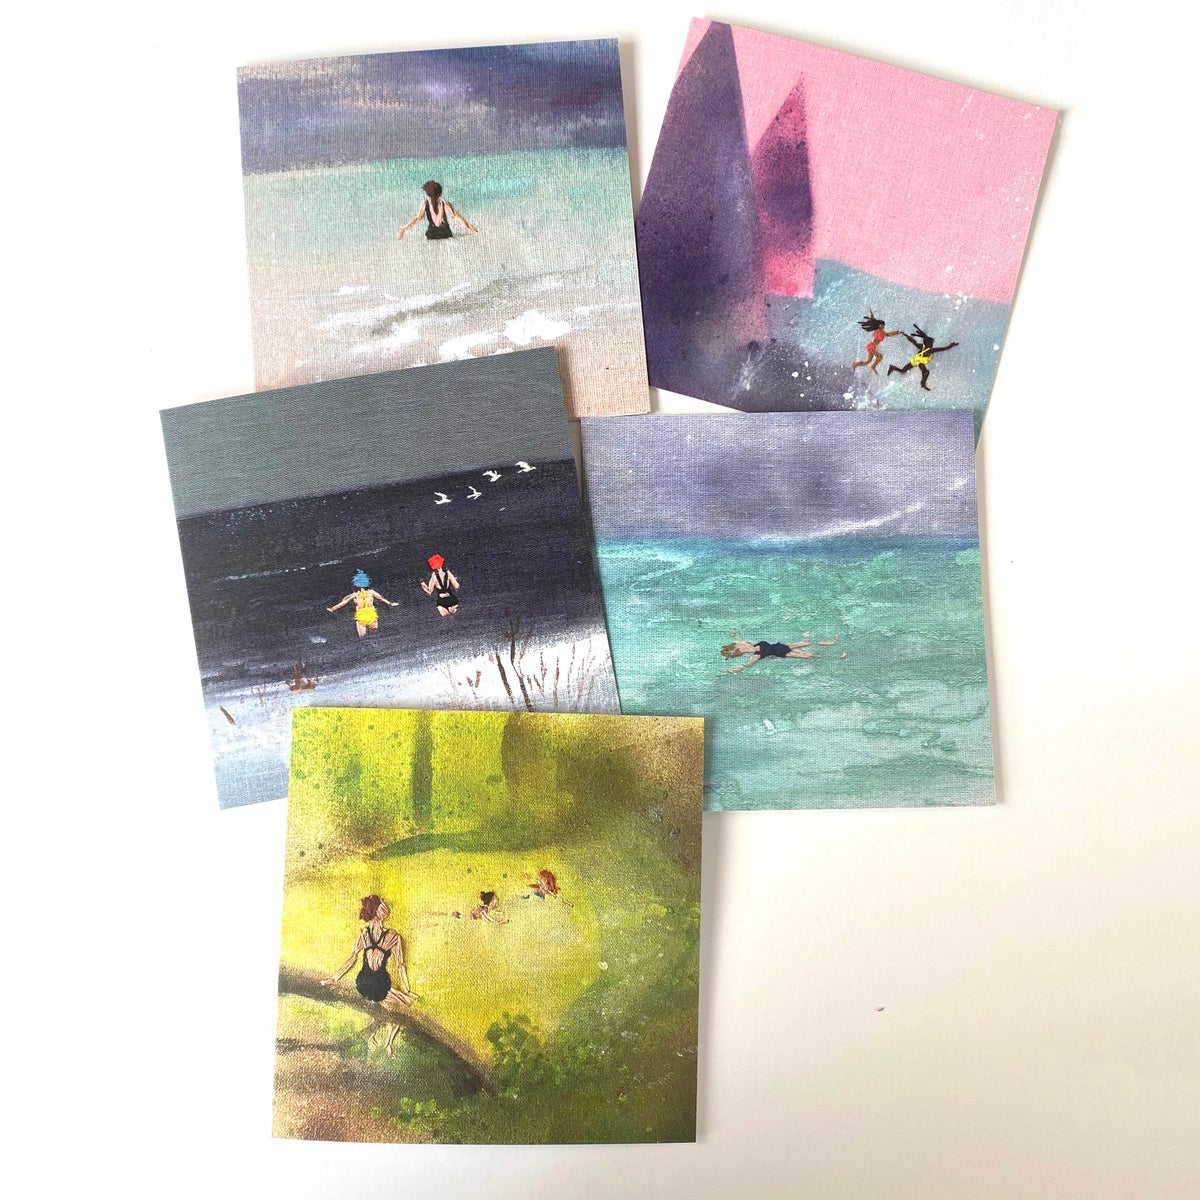 Image of Wild Swimming - set of 5 'embroidered' luxury greeting cards